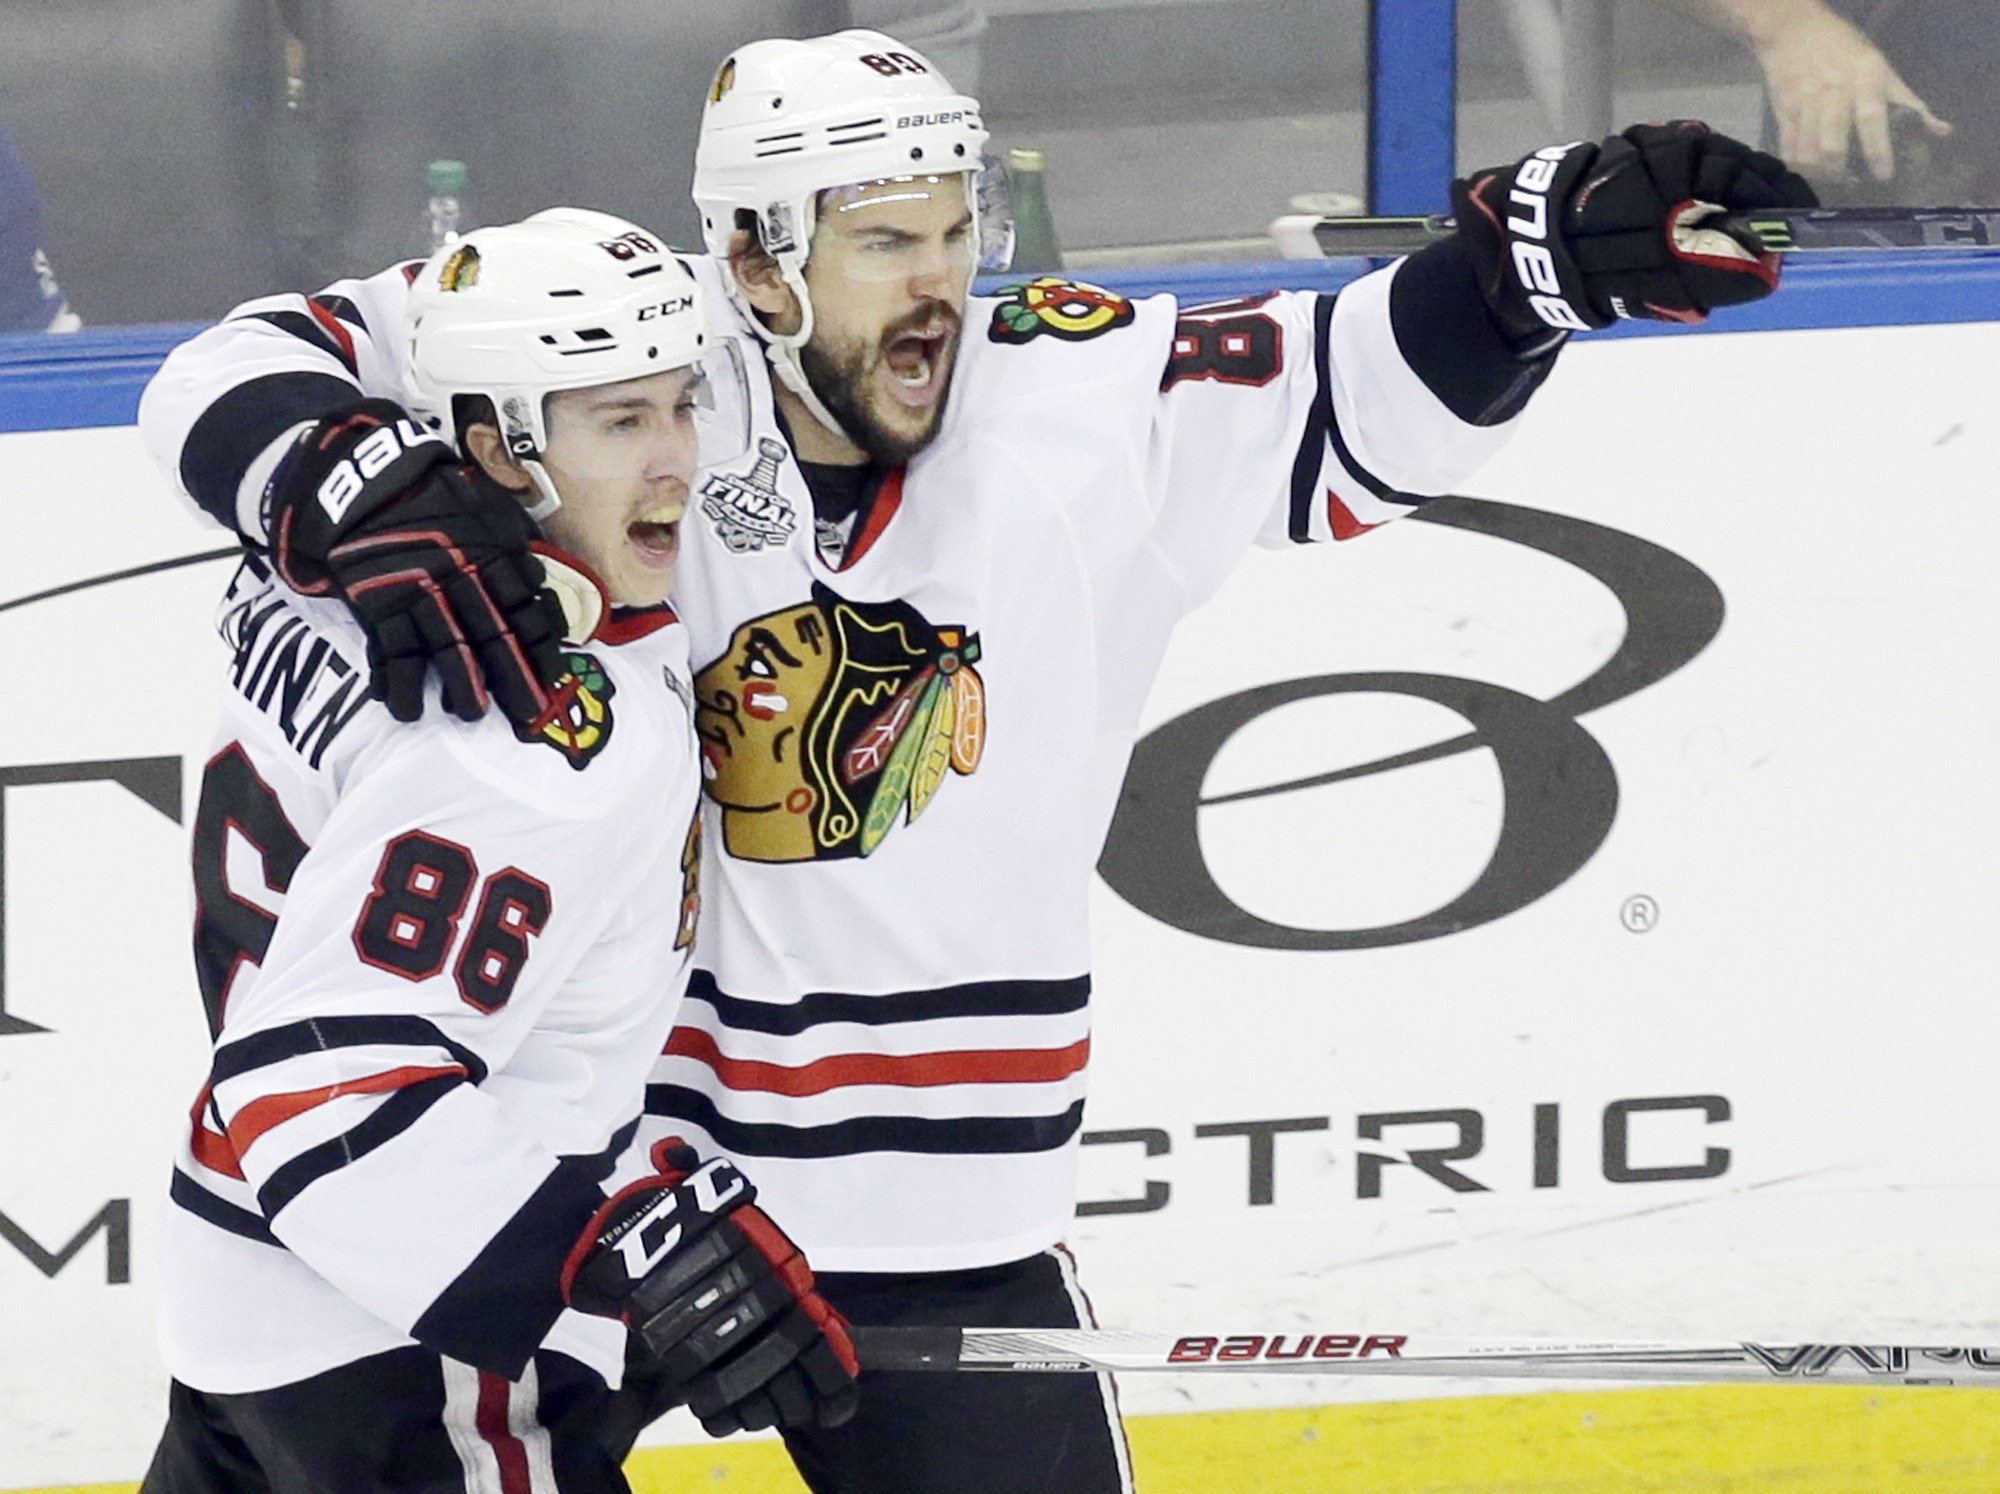 Chicago Blackhawks center Antoine Vermette (80) celebrates with left wing Teuvo Teravainen (86) after scoring a goal against the Tampa Bay Lightning during the third period of Game 5 of the NHL hockey Stanley Cup Final, Saturday, June 13, 2015, in Tampa,